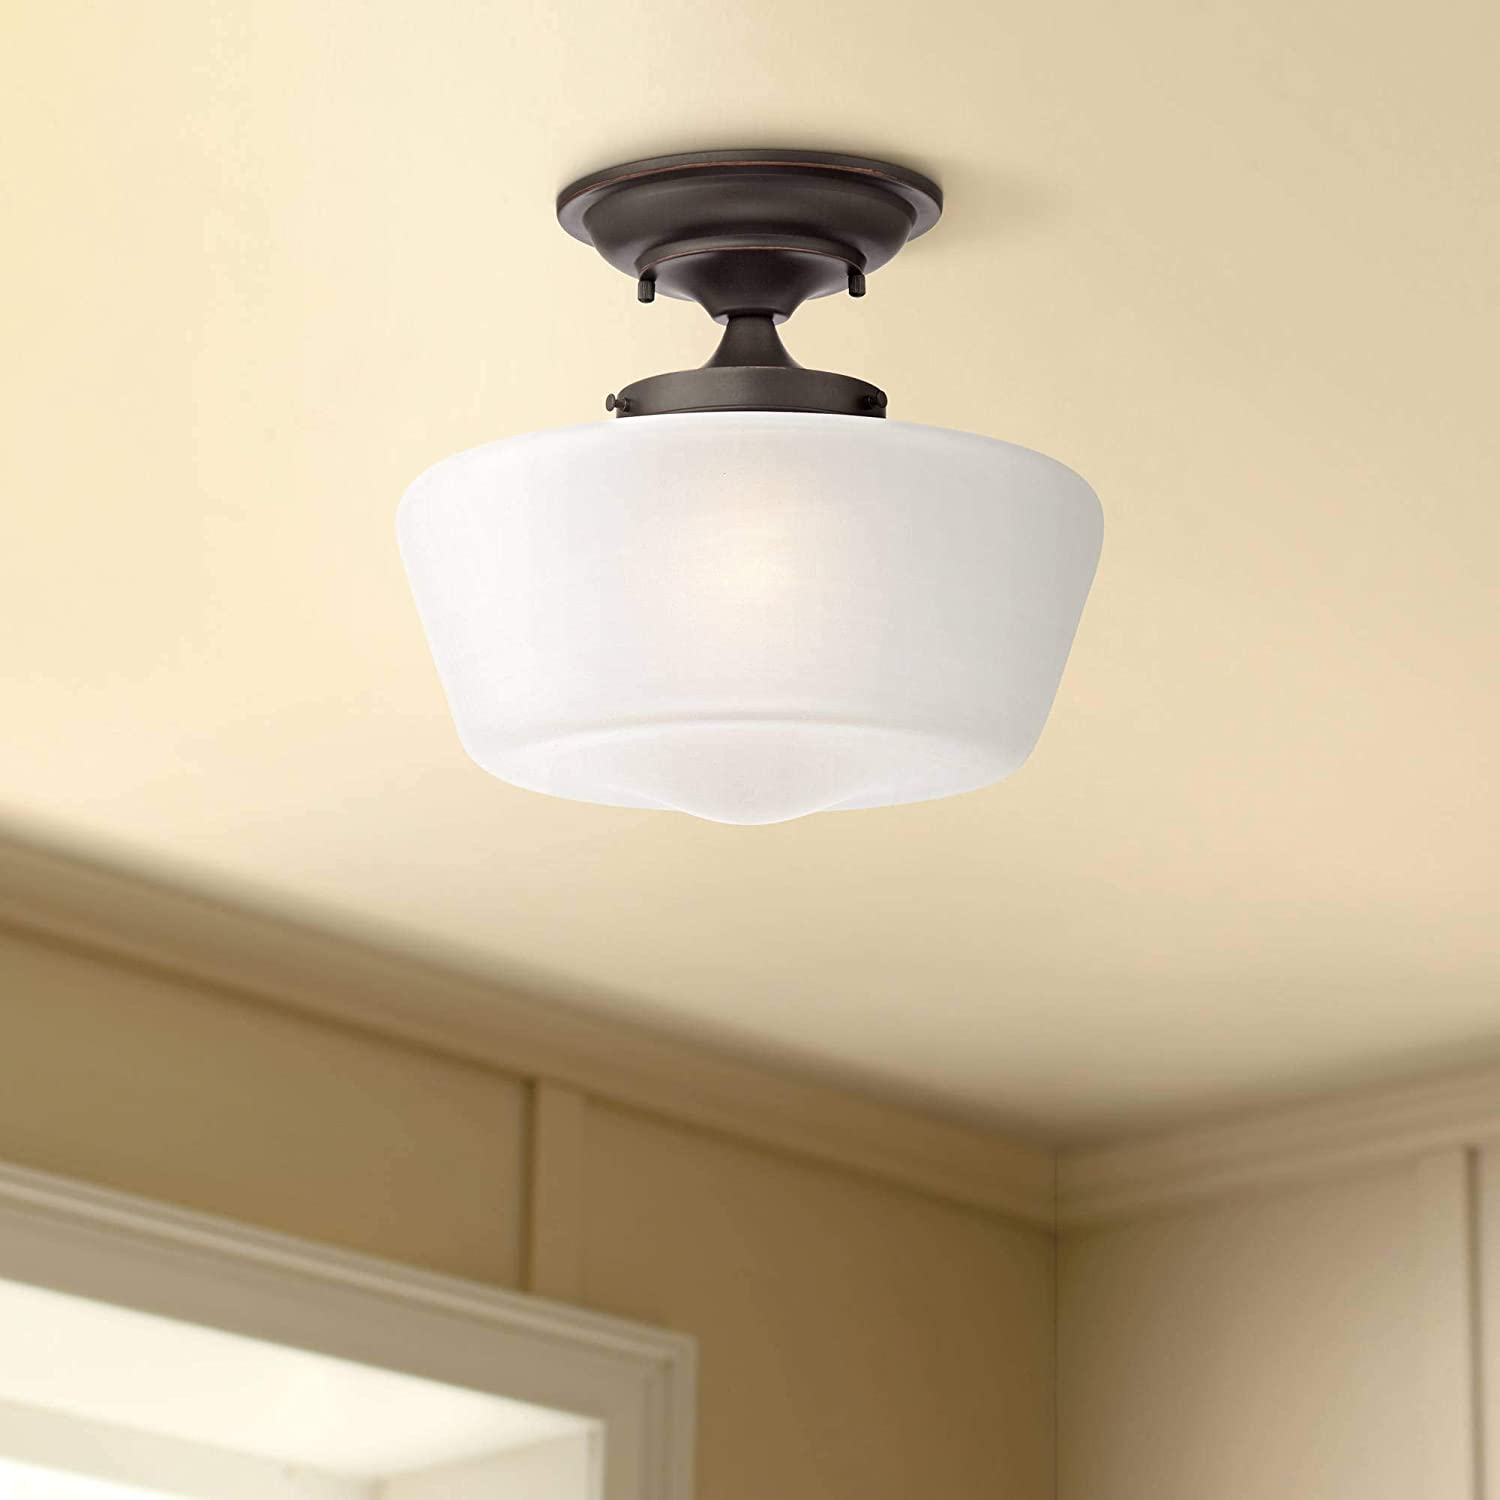 Schoolhouse Floating Ceiling Light Semi Flush Mount Fixture Bronze 12\